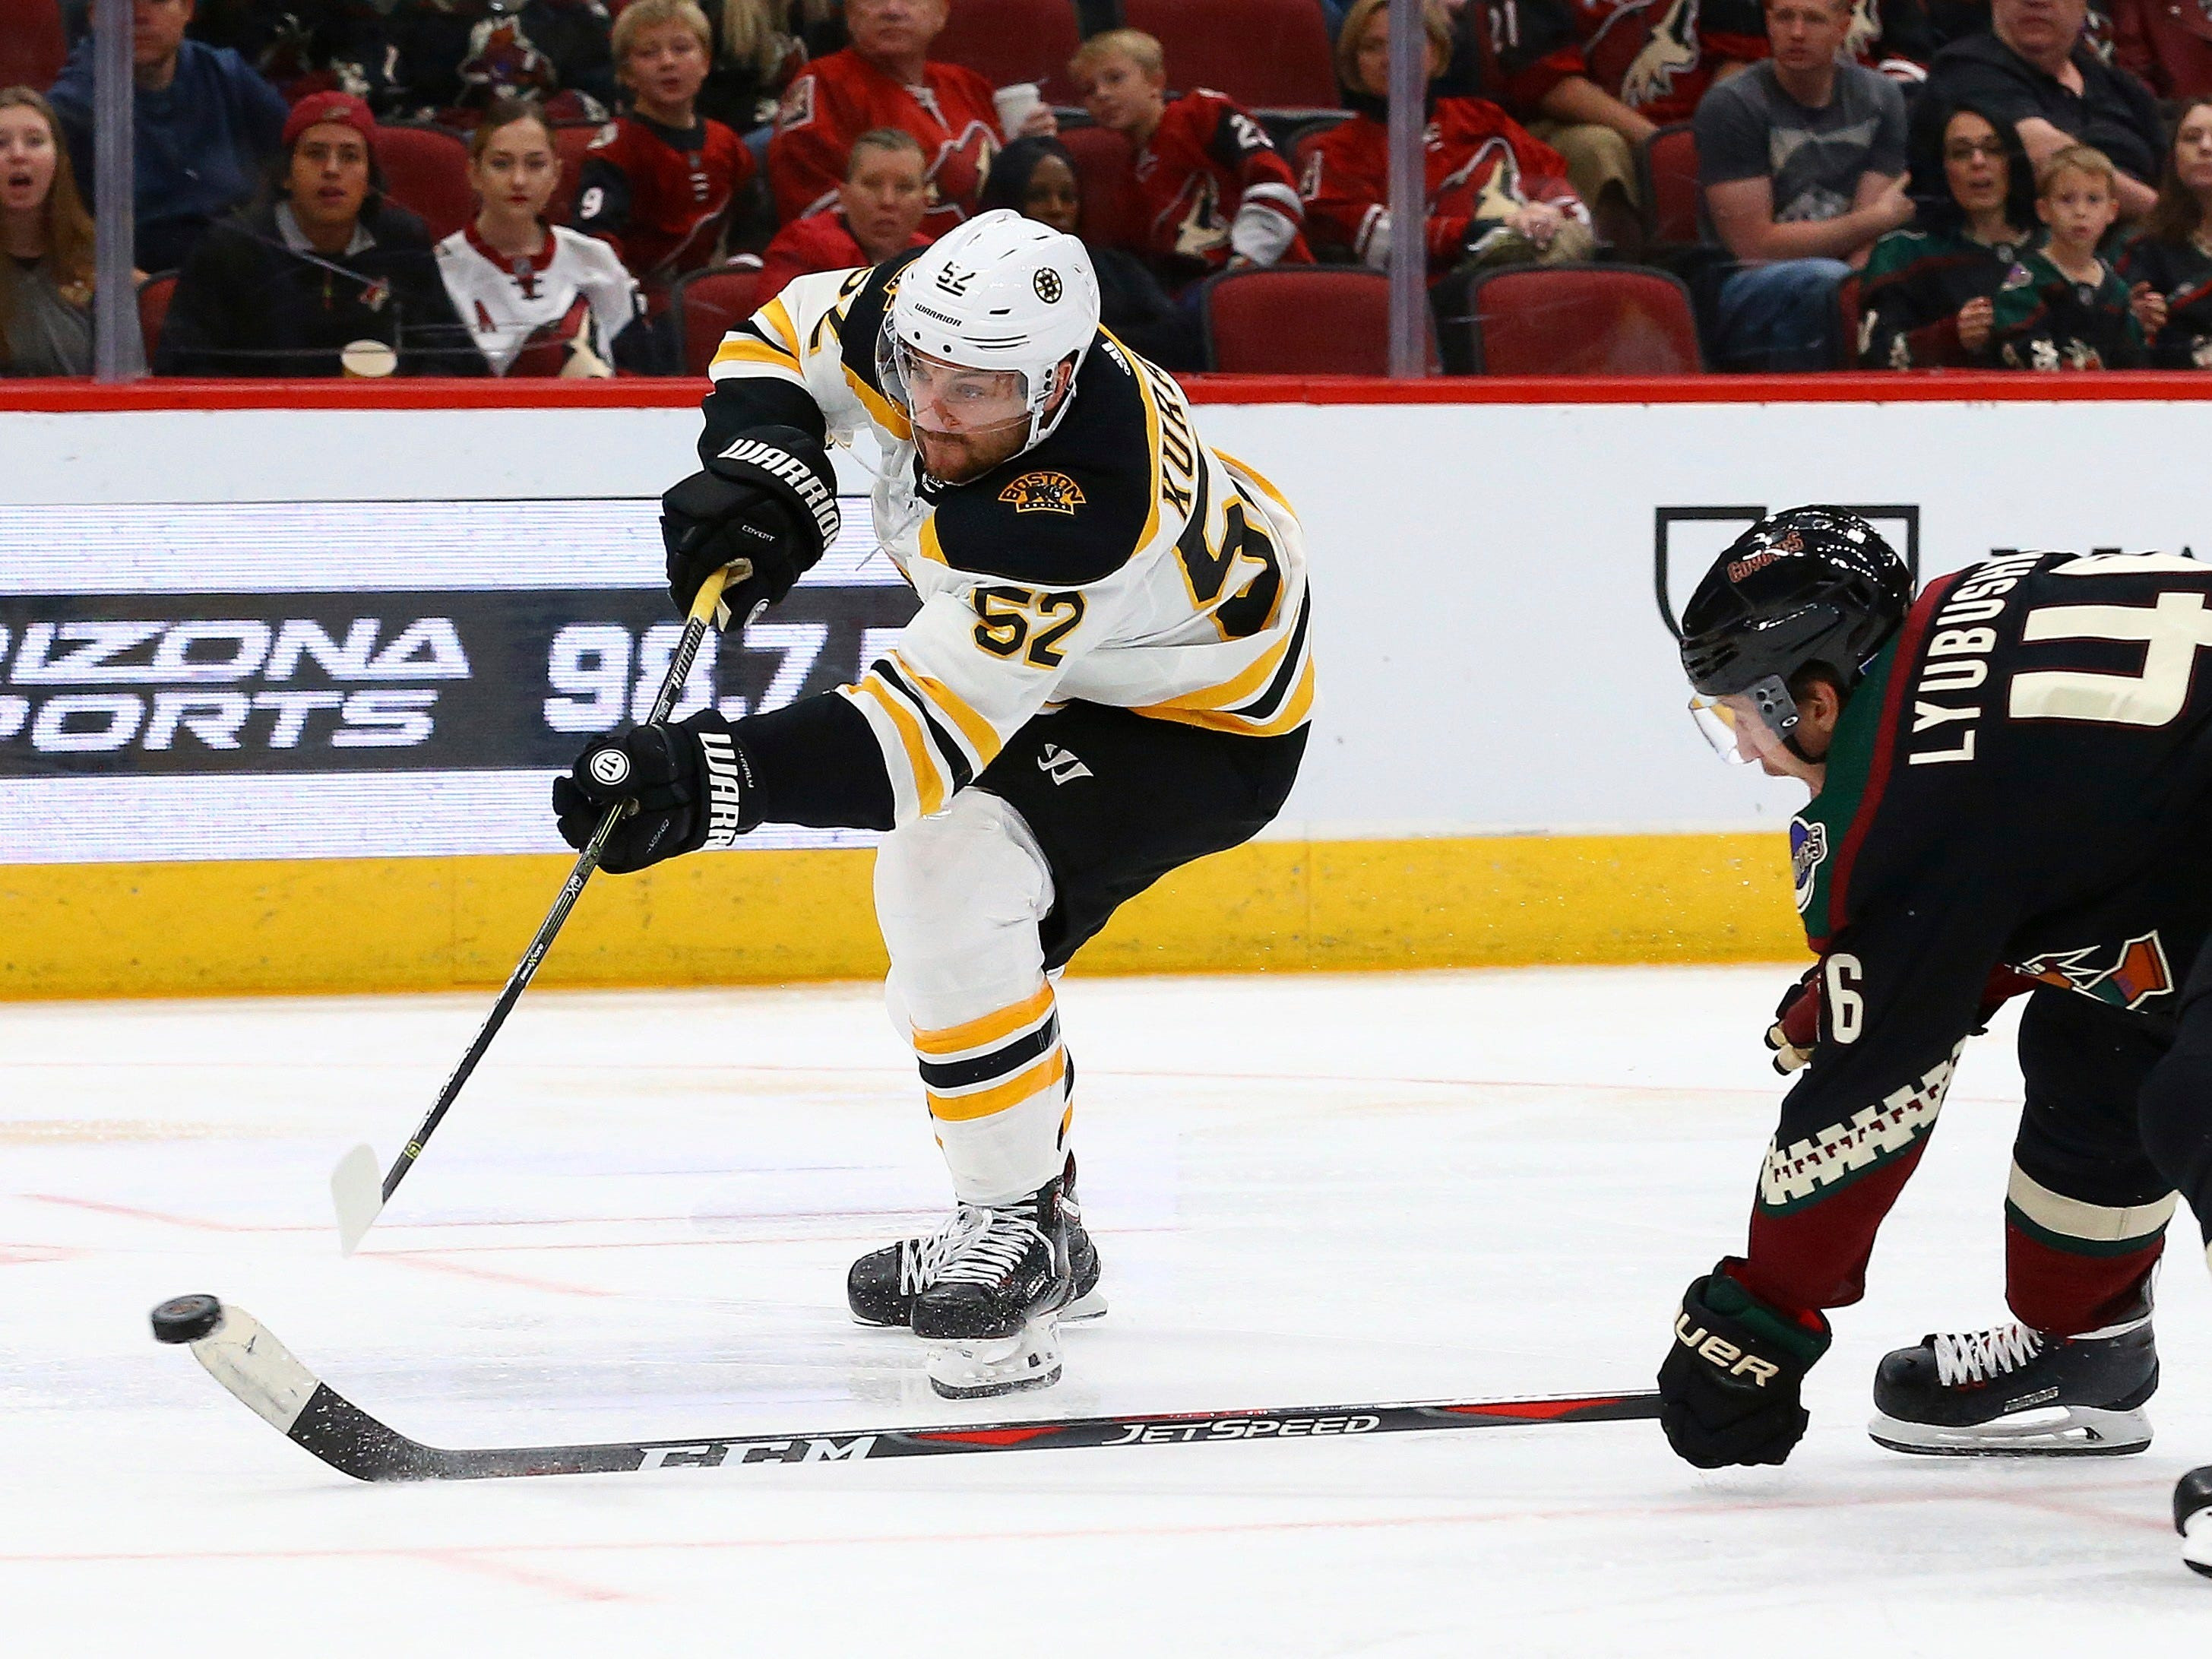 Boston Bruins center Sean Kuraly (52) shoots the puck past Arizona Coyotes defenseman Ilya Lyubushkin (46) during the third period of an NHL hockey game Saturday, Nov. 17, 2018, in Glendale, Ariz. The Bruins won 2-1. (AP Photo/Ross D. Franklin)